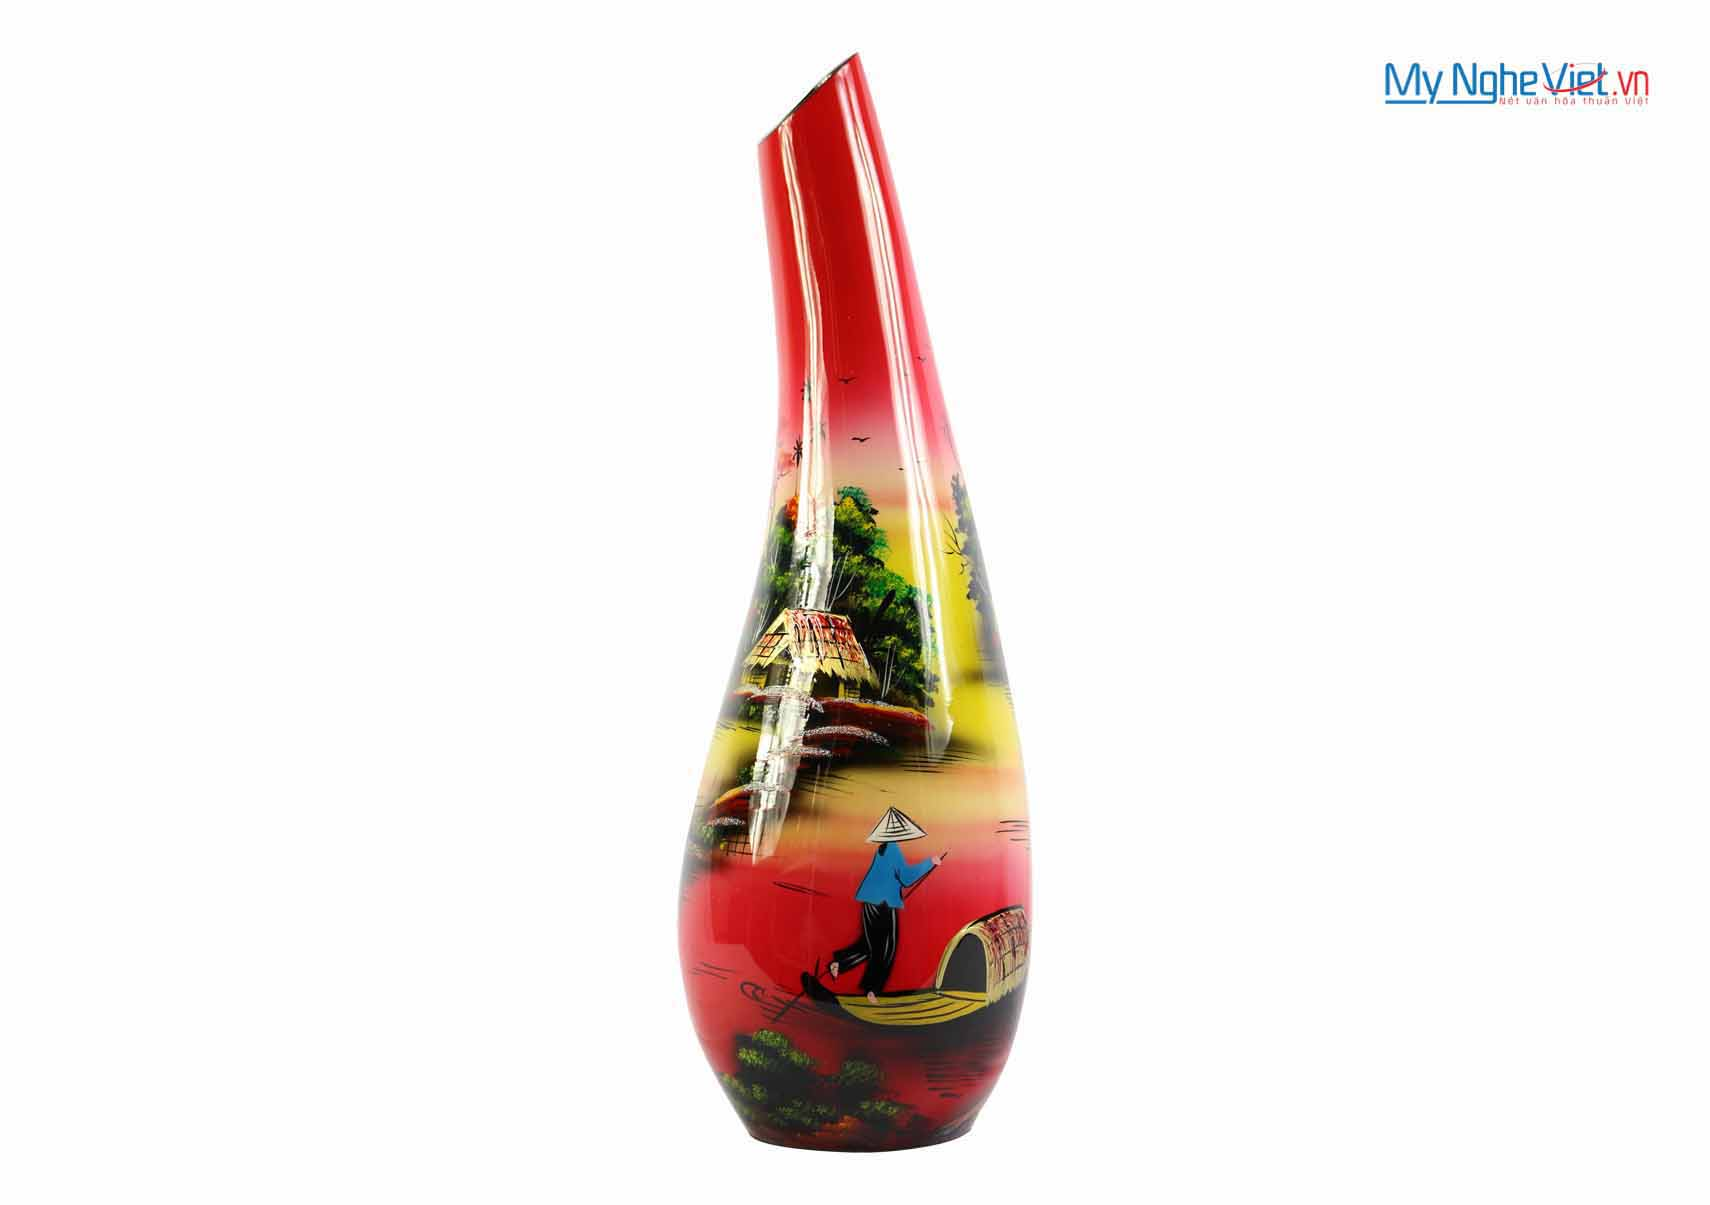 Lacquer vase MNV-LHSM06-6